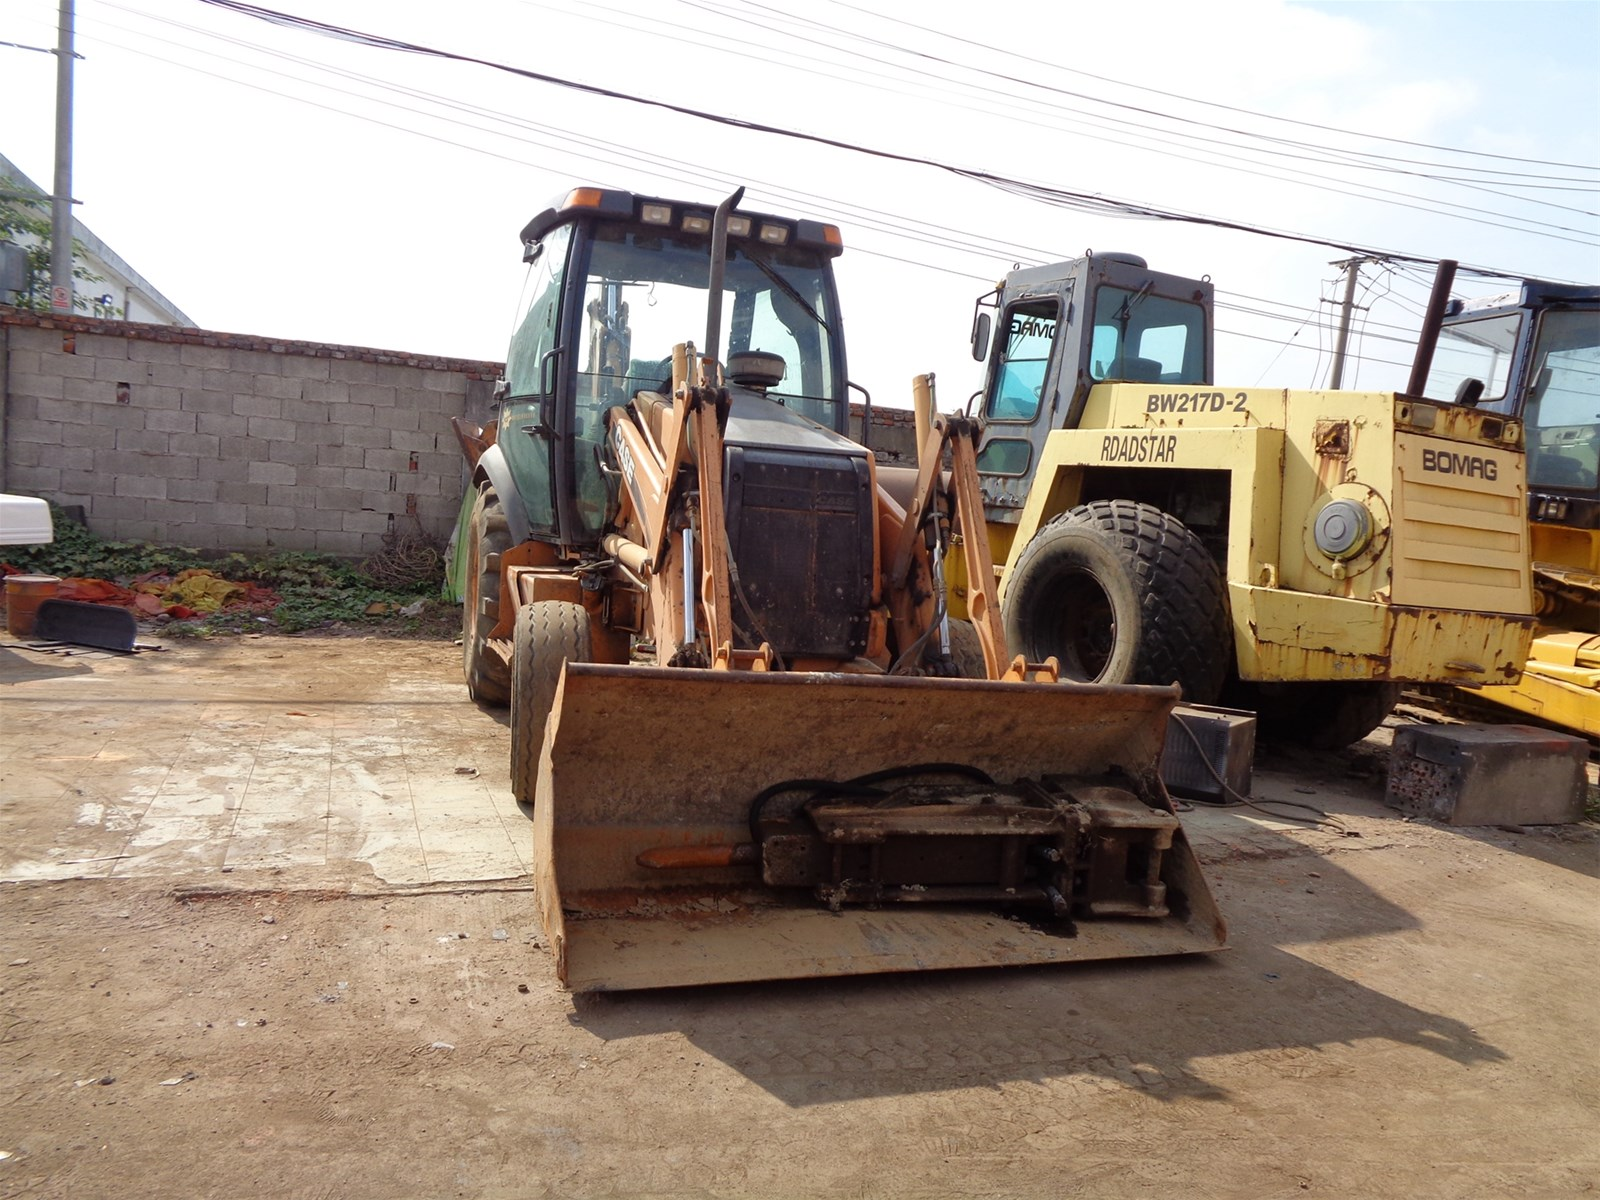 Used case 580M backhoe loader for sale and case 580M construction backhoe loader for tractors